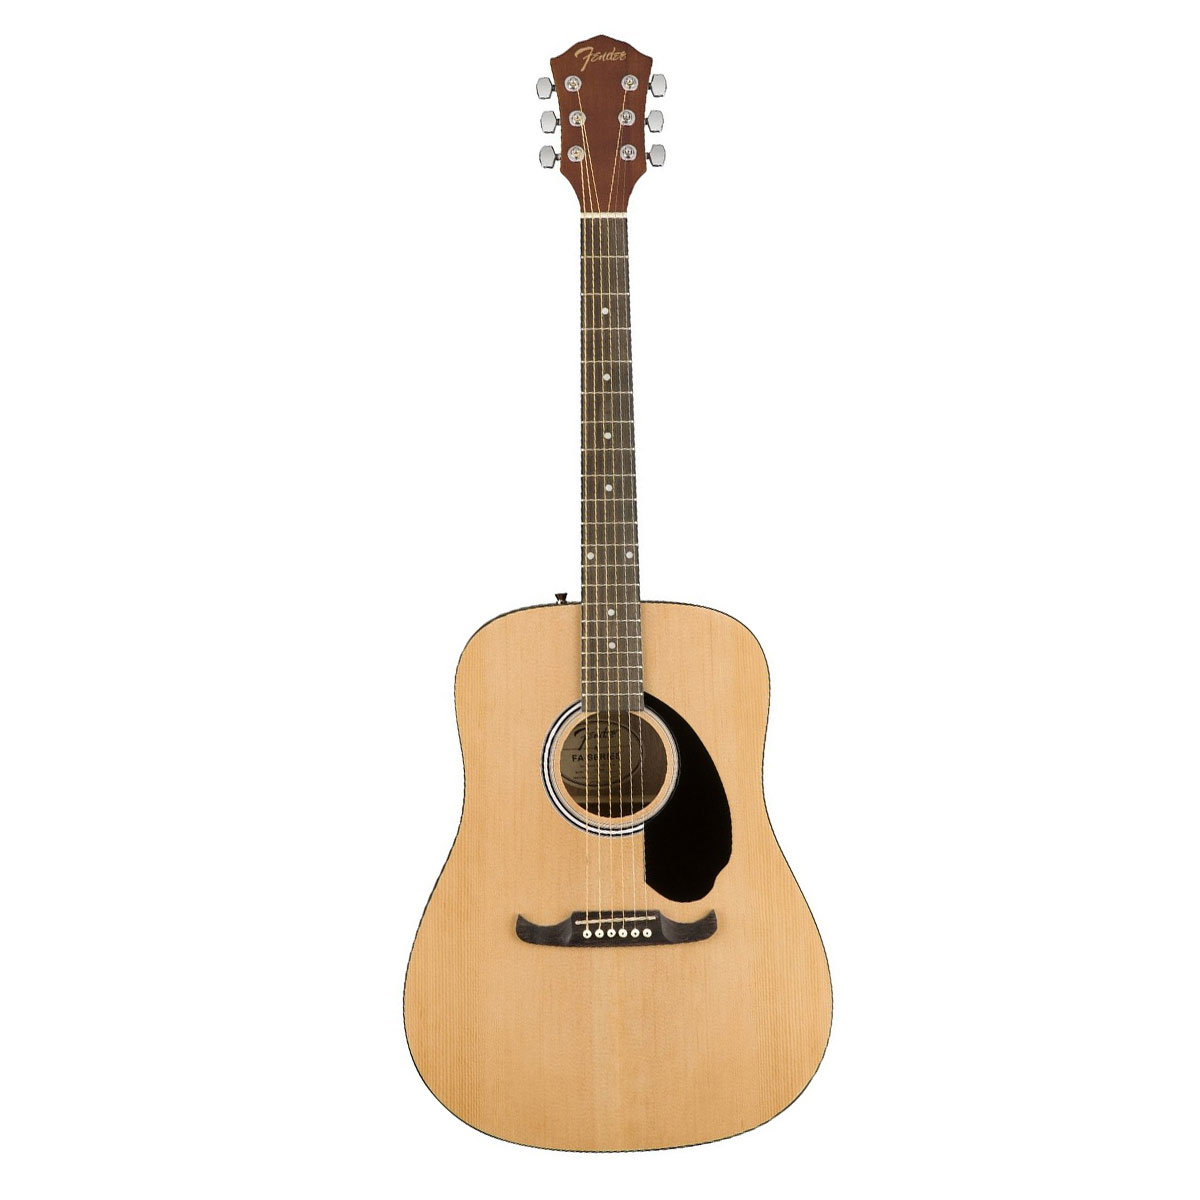 Fender - FA-125 Dreadnought guitare classique naturel